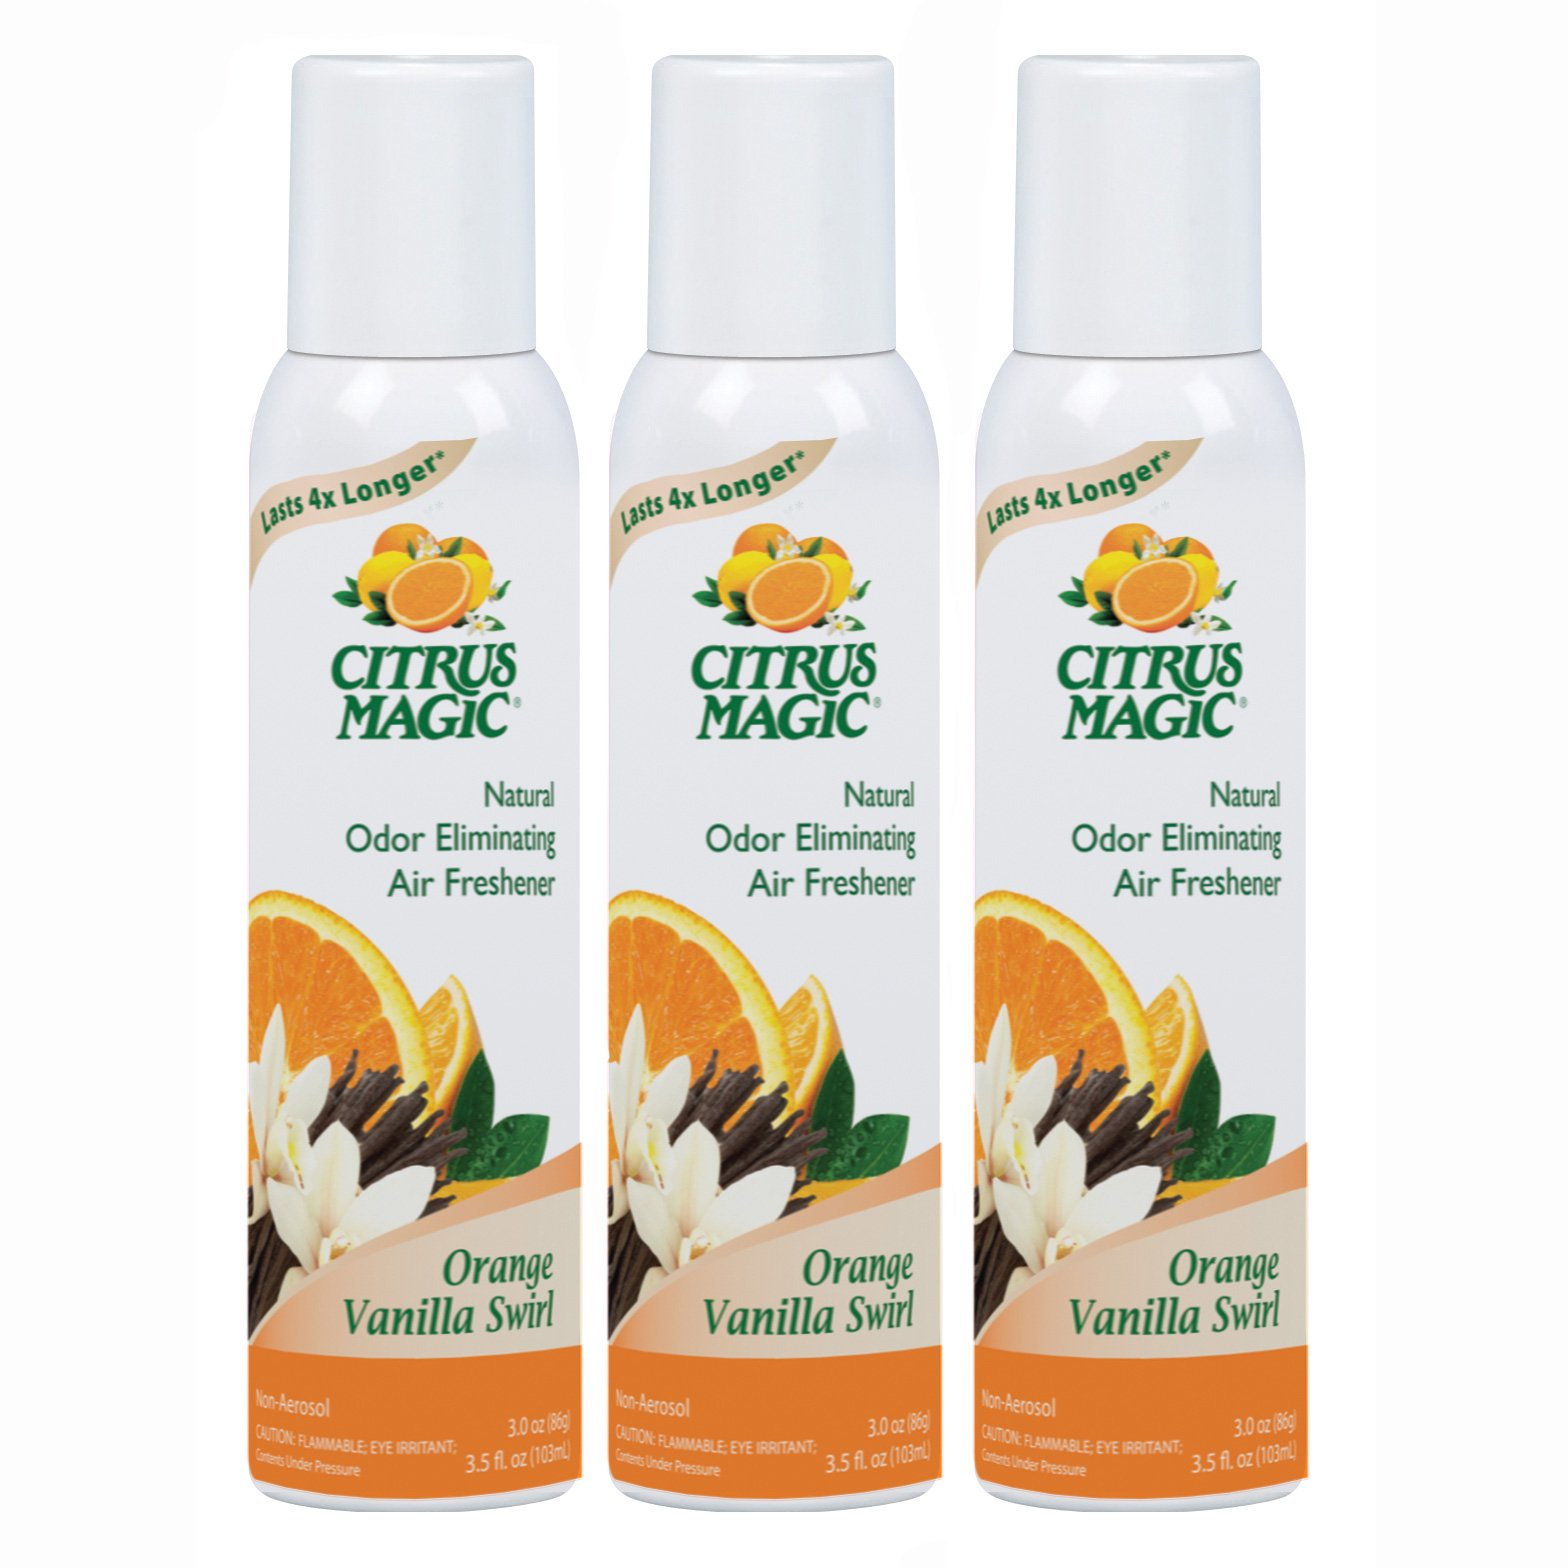 Citrus Magic Natural Odor Eliminating Air Freshener Spray Orange-Vanilla Swirl, Pack of 3, 3.0-Ounces Each by Citrus Magic (Image #1)